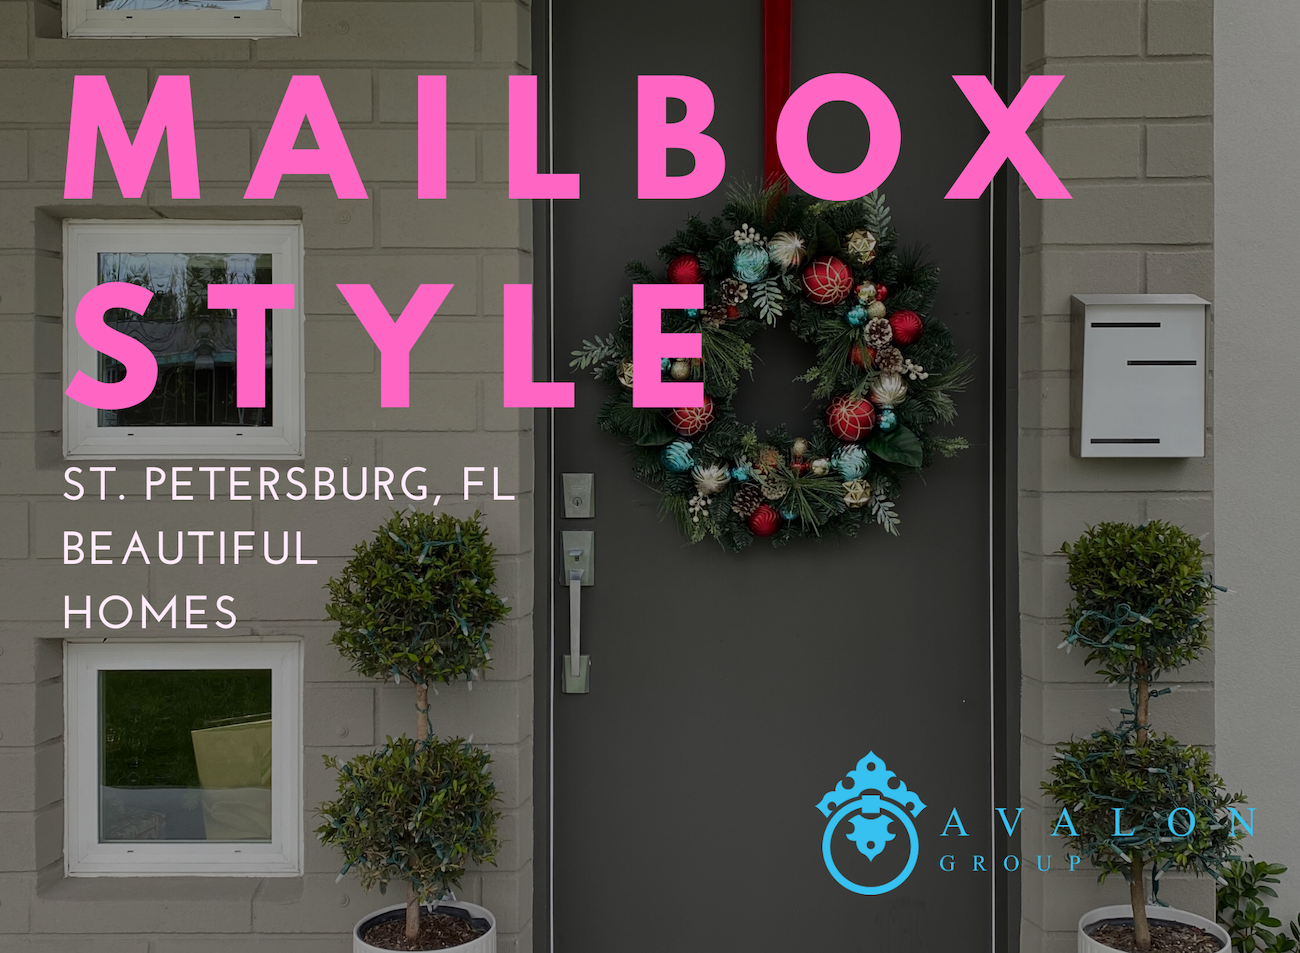 "Cover Picture for article ""Mailbox Style, St. Petersburg, Fl Beautiful Homes."" There is a house in the background. A close up of the front door that is dark gray flanked by two green topiaries. White trim around 3 windows, a wreath on the door with blue, red and silver balls, and a white mid-century modern mailbox."